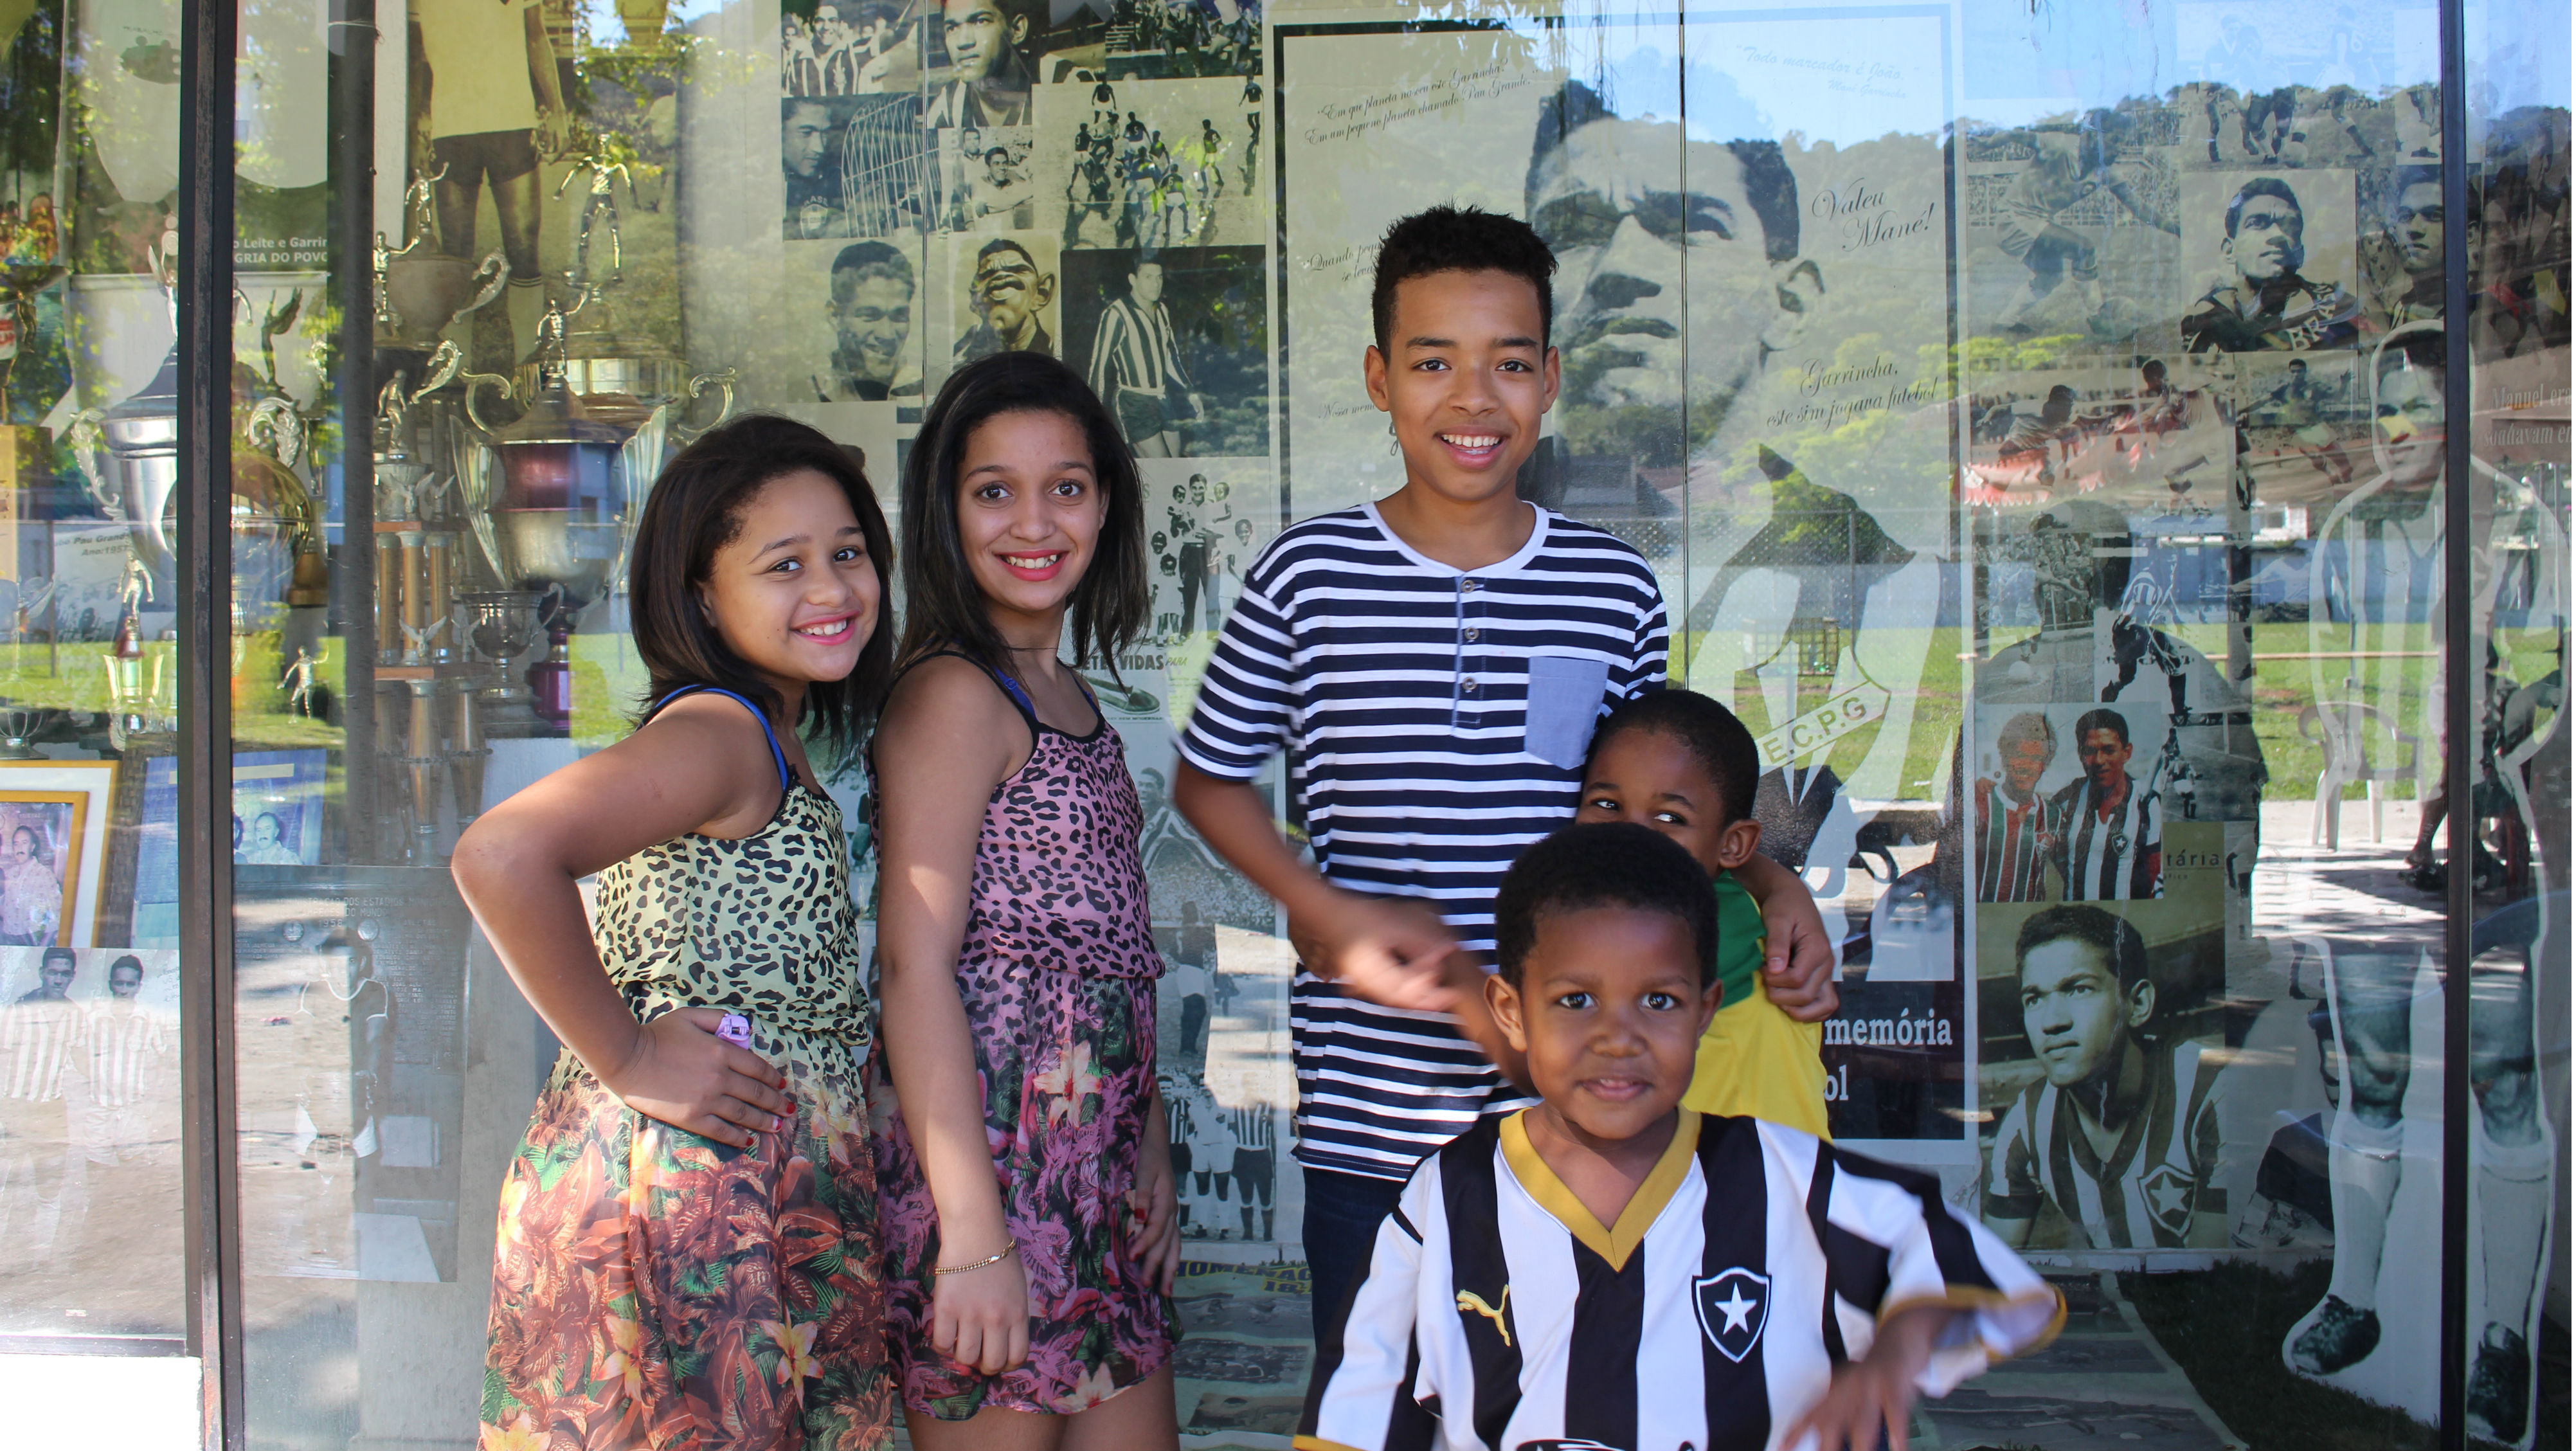 From Brazil to Sweden Garrincha s heirs run in his footsteps